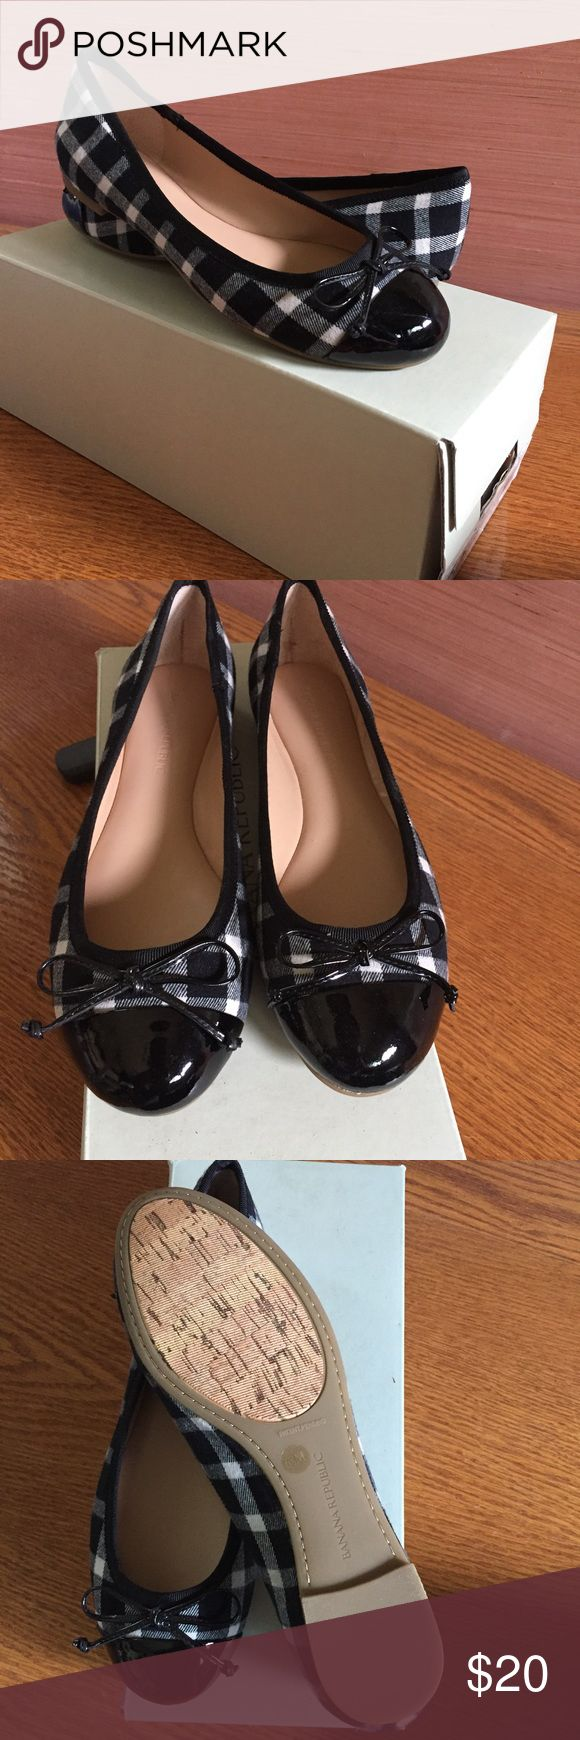 Never worn black and white checkered ballet flats Great flat for work or everyday! I've owned a few pairs and they're really comfortable! They run a half size big. Banana Republic Shoes Flats & Loafers